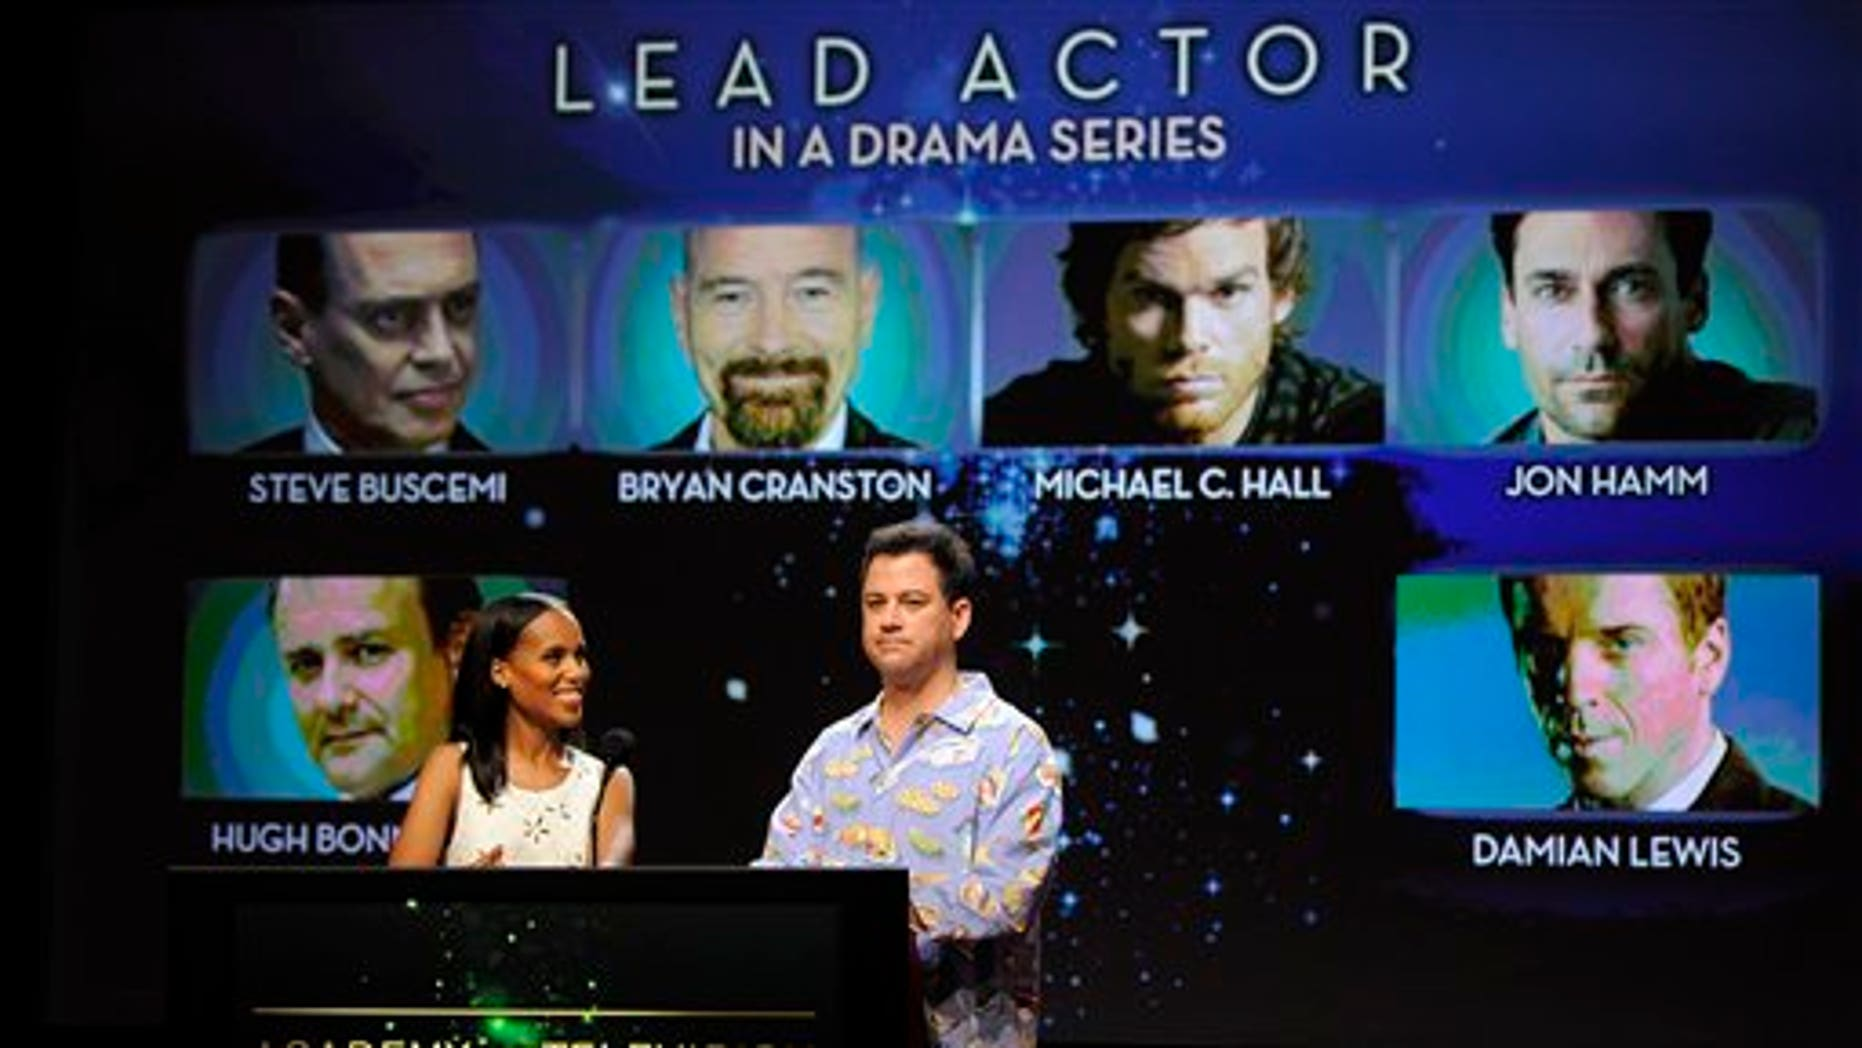 Actress Kerry Washington, left, and comedian Jimmy Kimmel announce the nominees for Lead Actor in a Drama Series during the nominations for the 64th Primetime Emmy Awards at the Academy of Television Arts & Sciences in Los Angeles, Thursday, July 19, 2012. The 64th annual Primetime Emmy Awards will be presented Sept. 23 at the Nokia Theatre in Los Angeles, hosted by Jimmy Kimmel and airing live on ABC. (Photo by Chris Pizzello/Invision/AP)